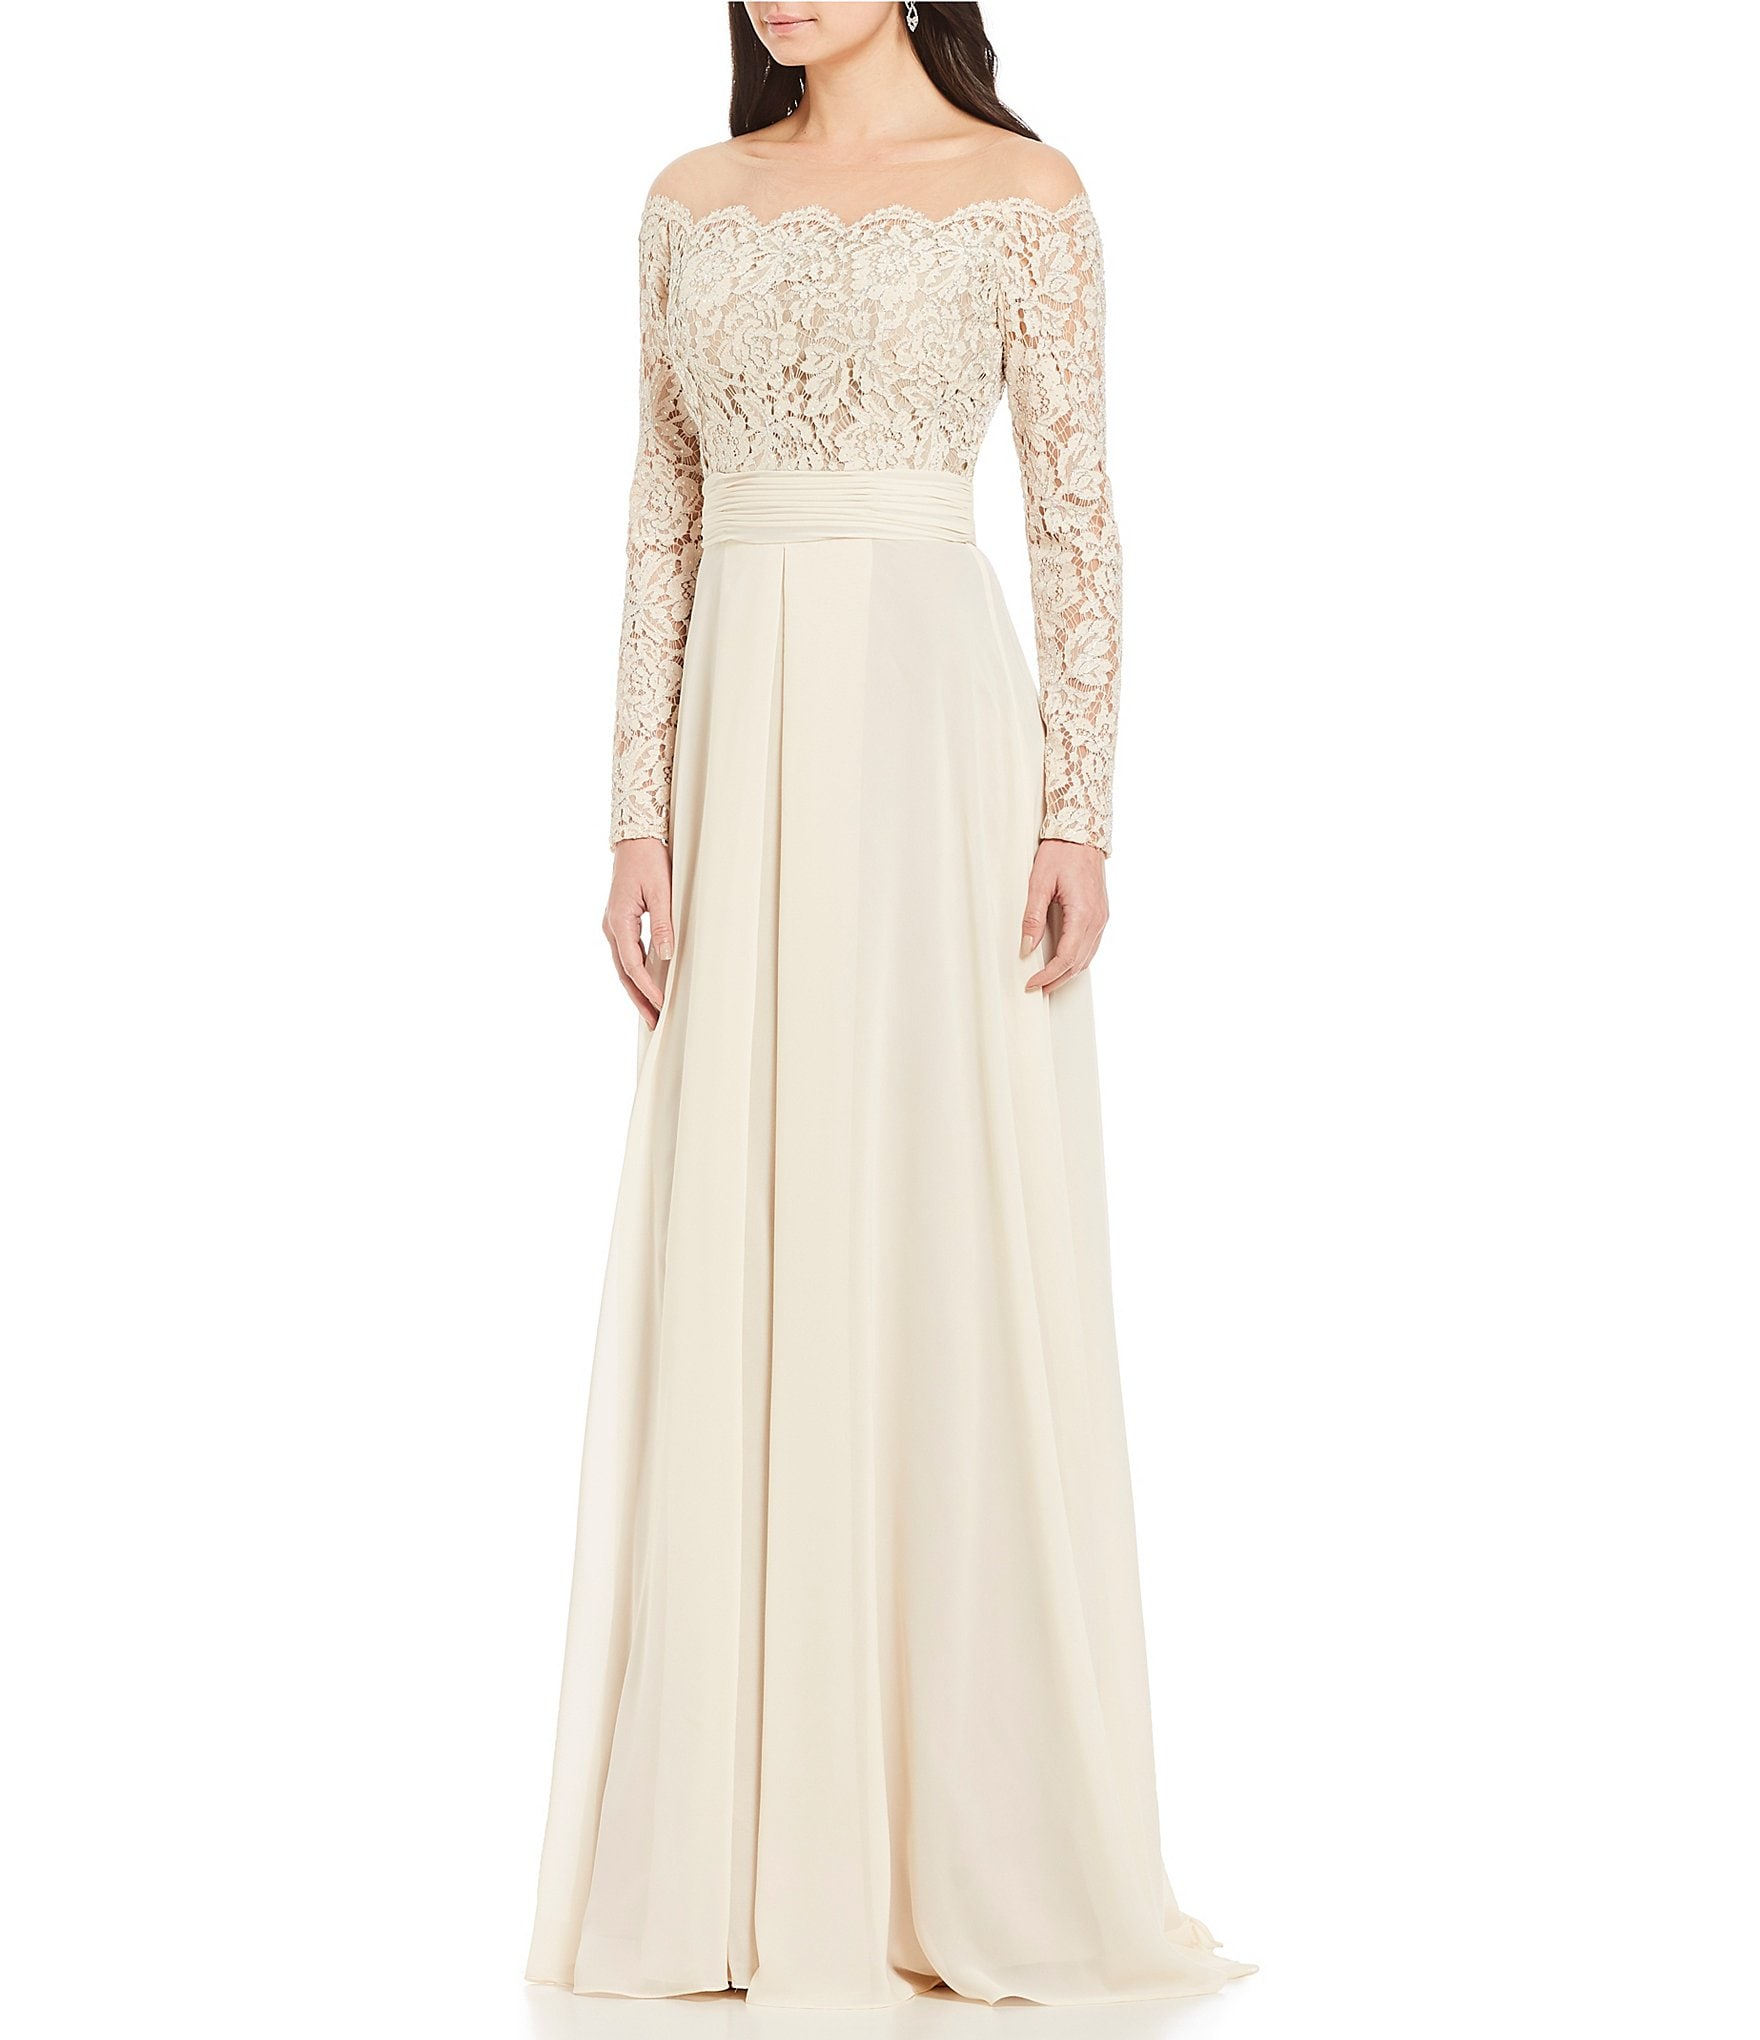 Womens wedding dresses bridal gowns dillards junglespirit Images